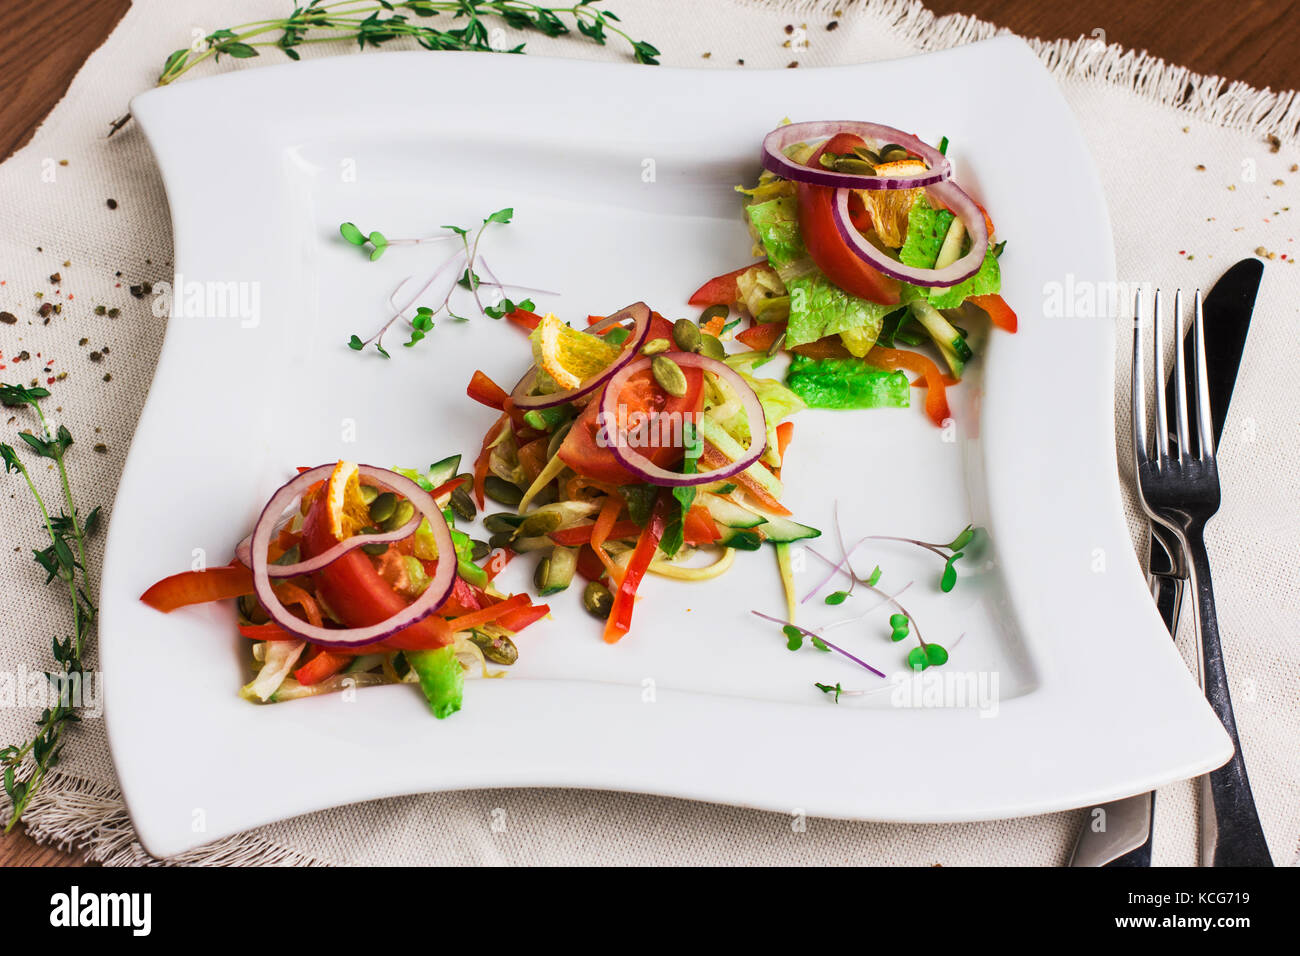 Salad of tomatoes, peppers, greens, oranges with pumpkin seeds on the white square plate - Stock Image